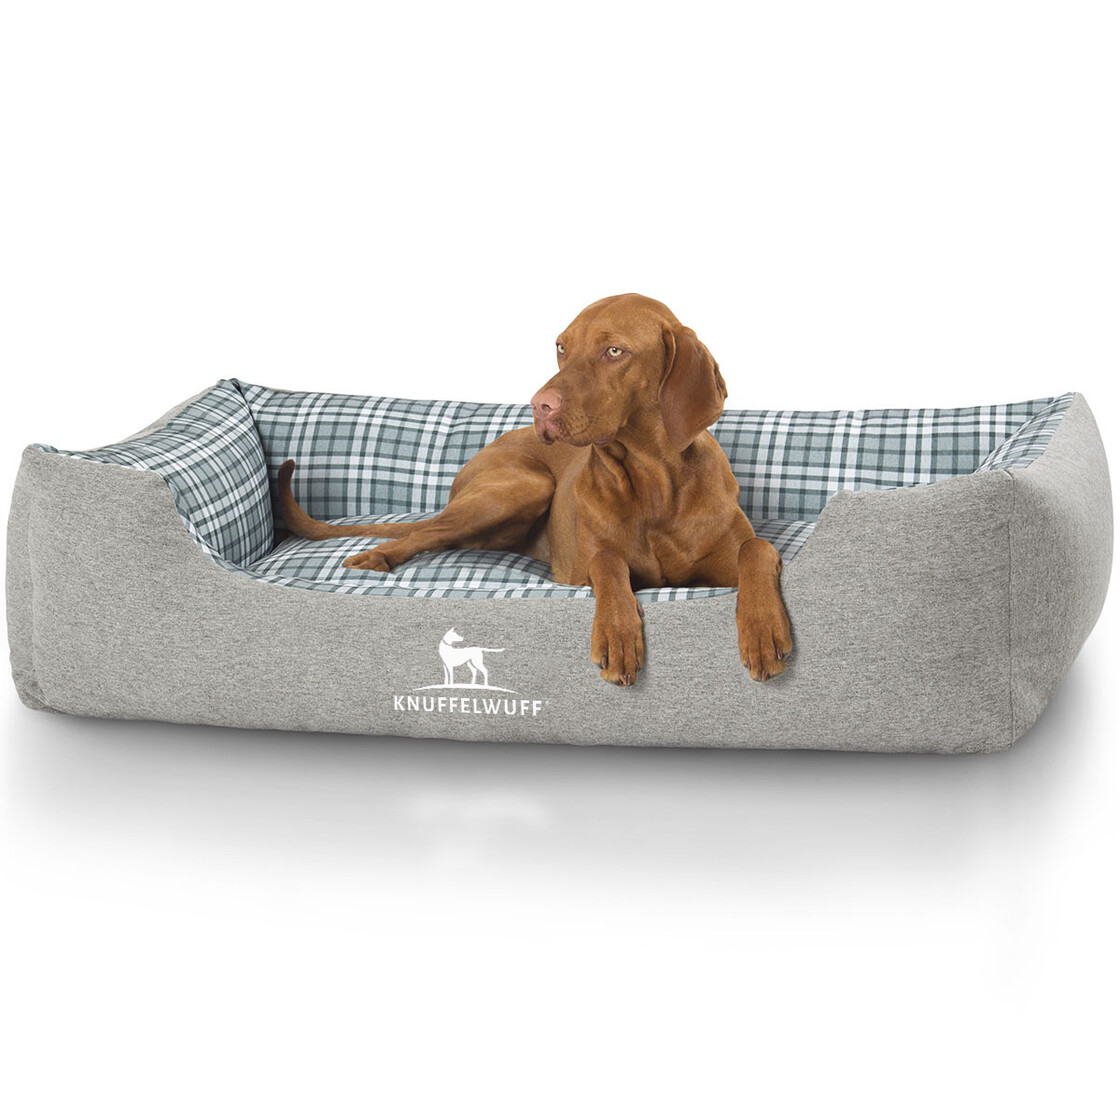 Knuffelwuff Checked Pattern Velour Dog Bed Lennard 66 74